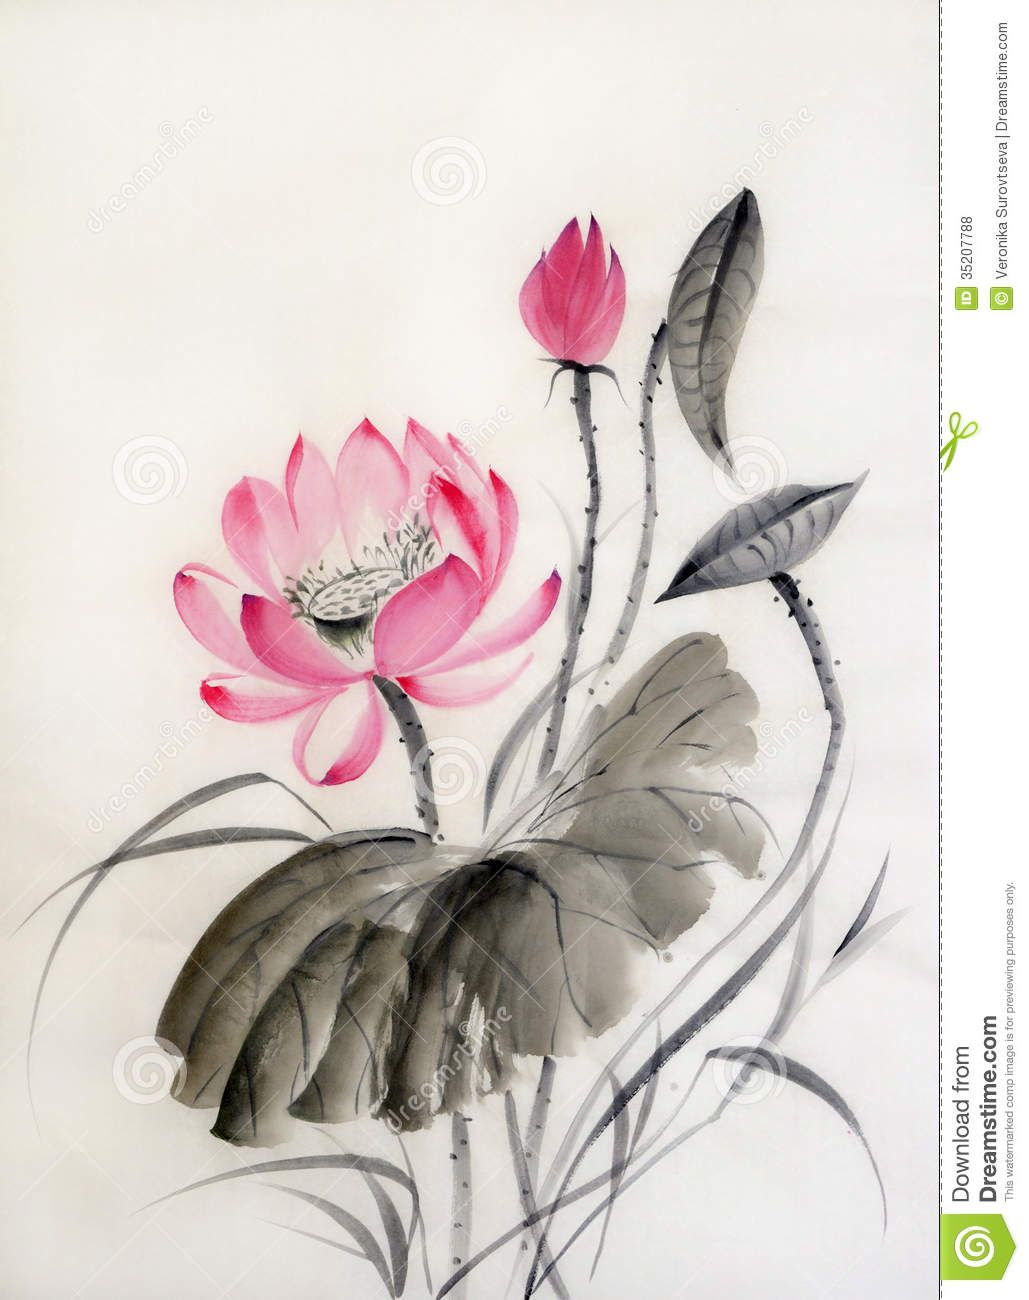 Watercolor painting watercolor flowers flower art flower - Watercolor Painting Of Lotus Flower With Big Leaf Original Art Asian Style Stock Photo From The Largest Library Of Royalty Free Images